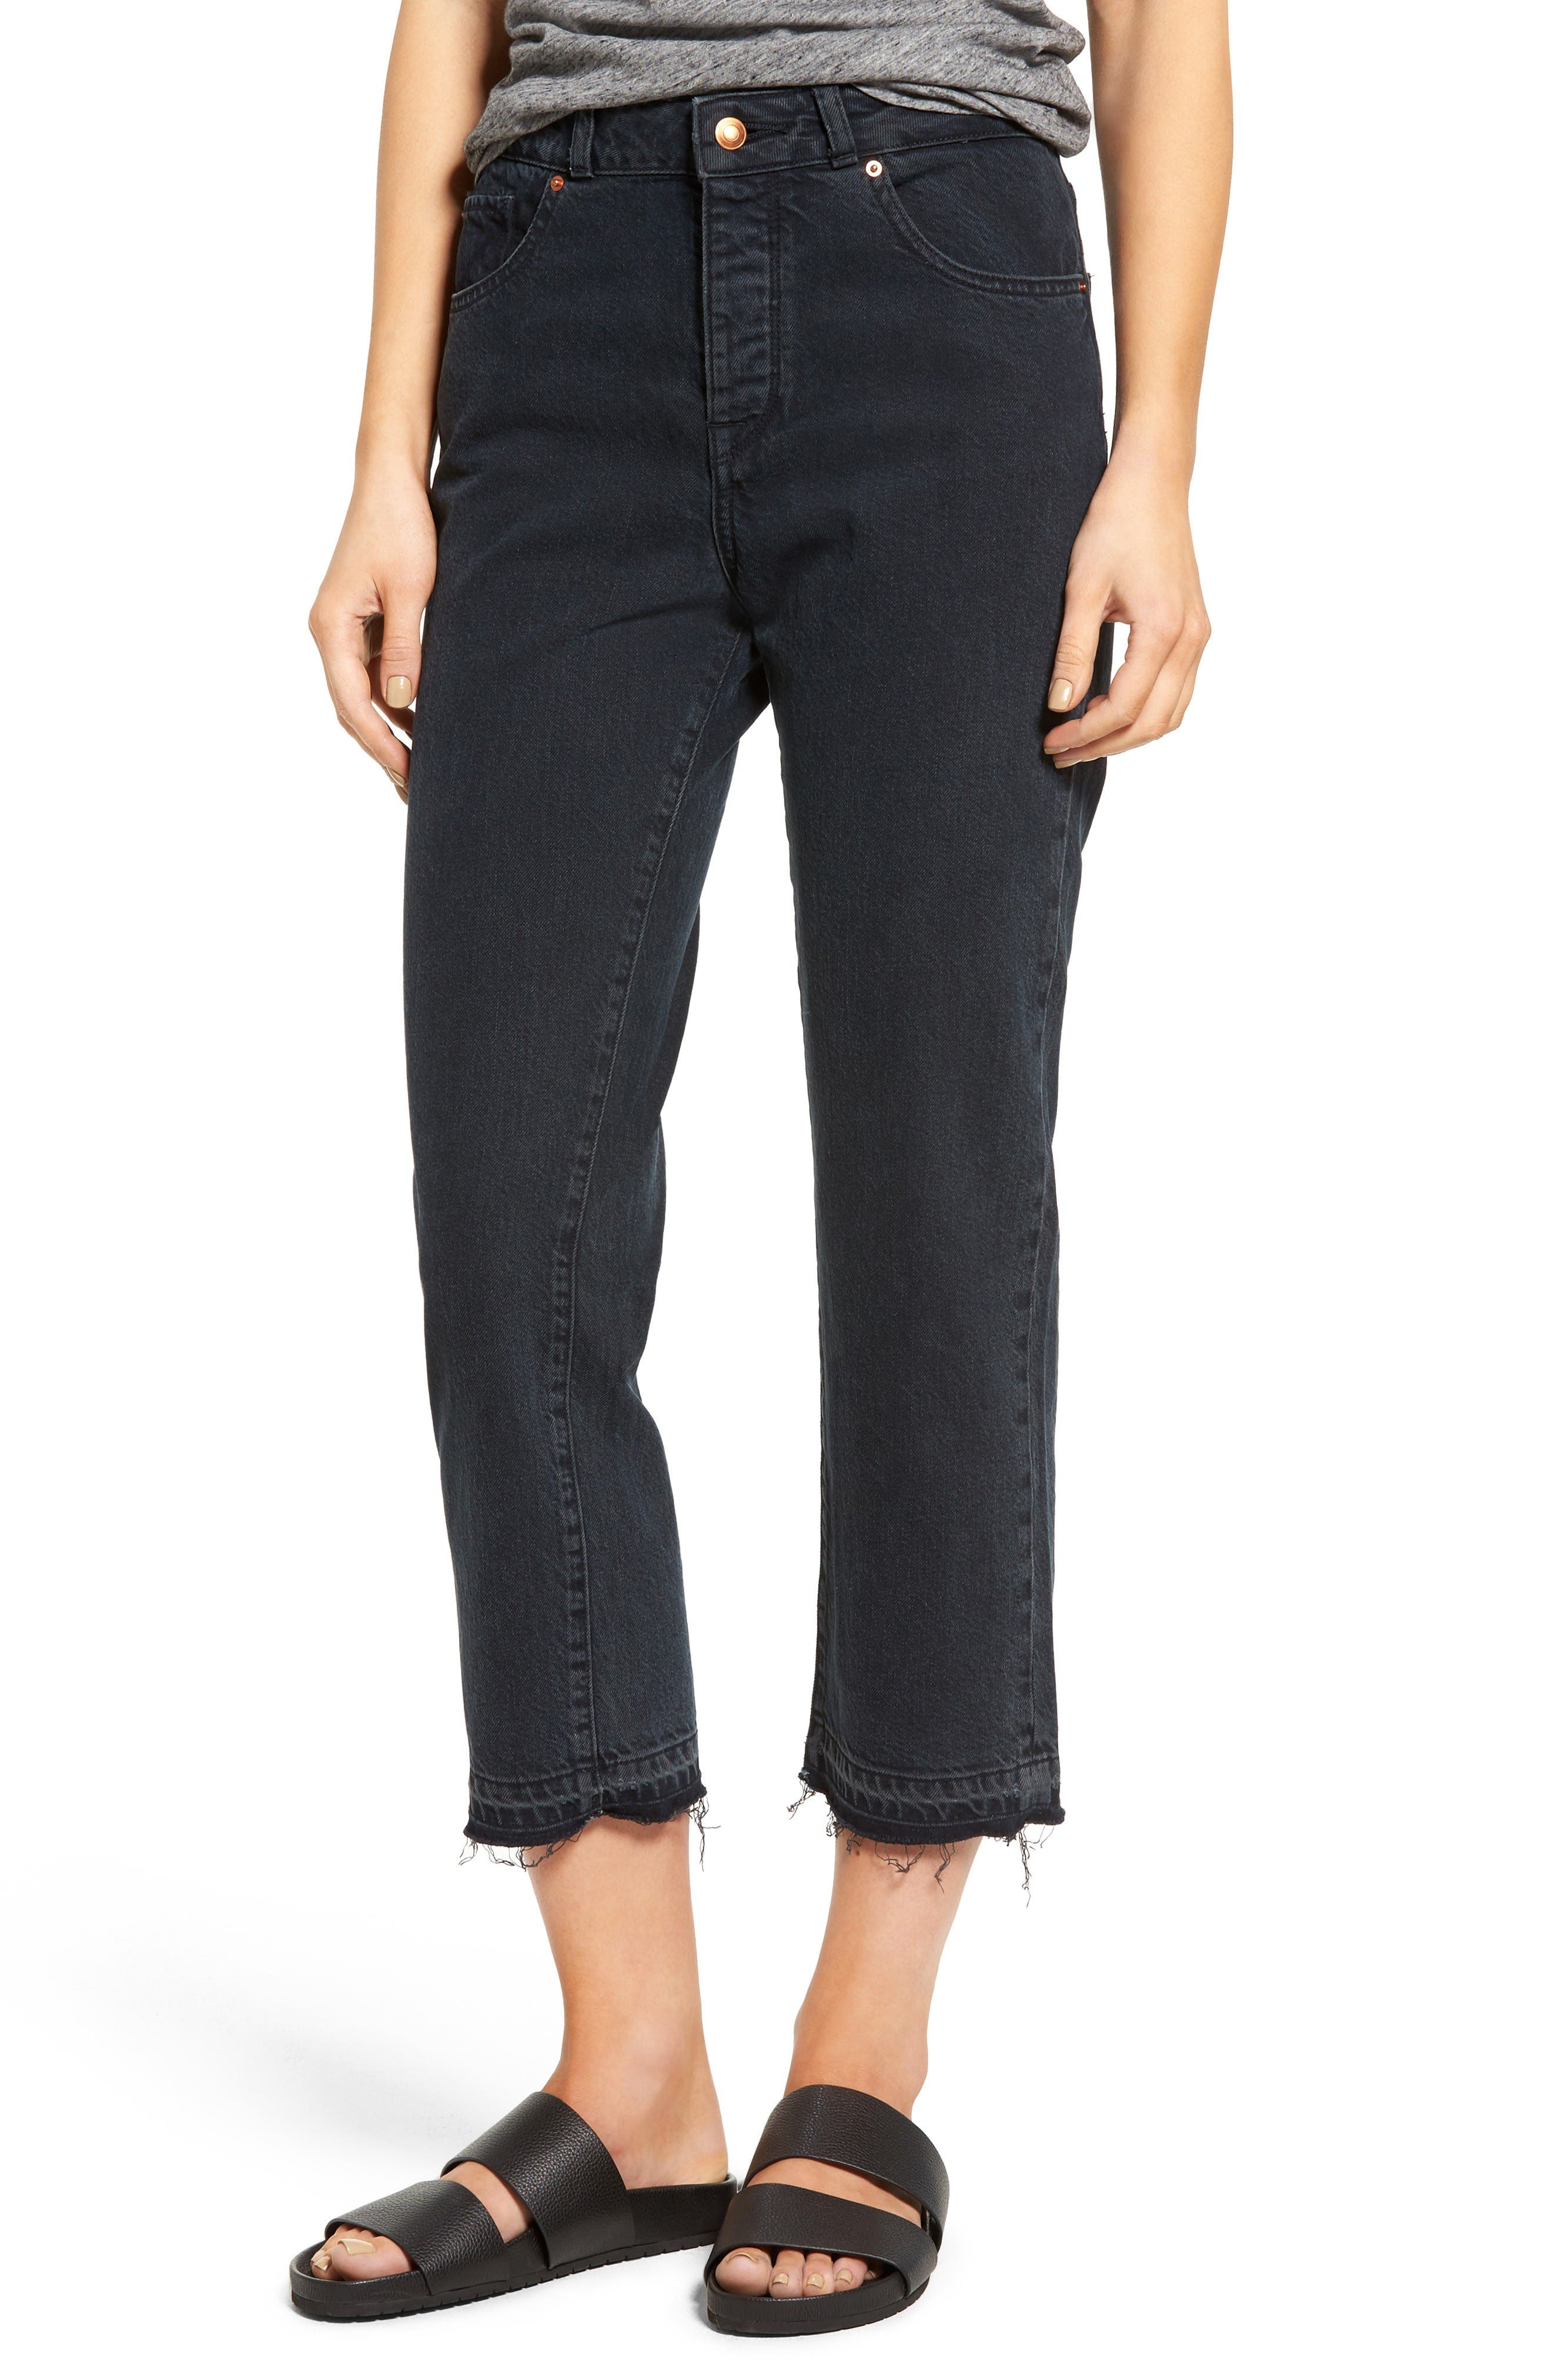 Main Image - DL1961 Patti High Rise Straight Leg Jeans (Fallen)